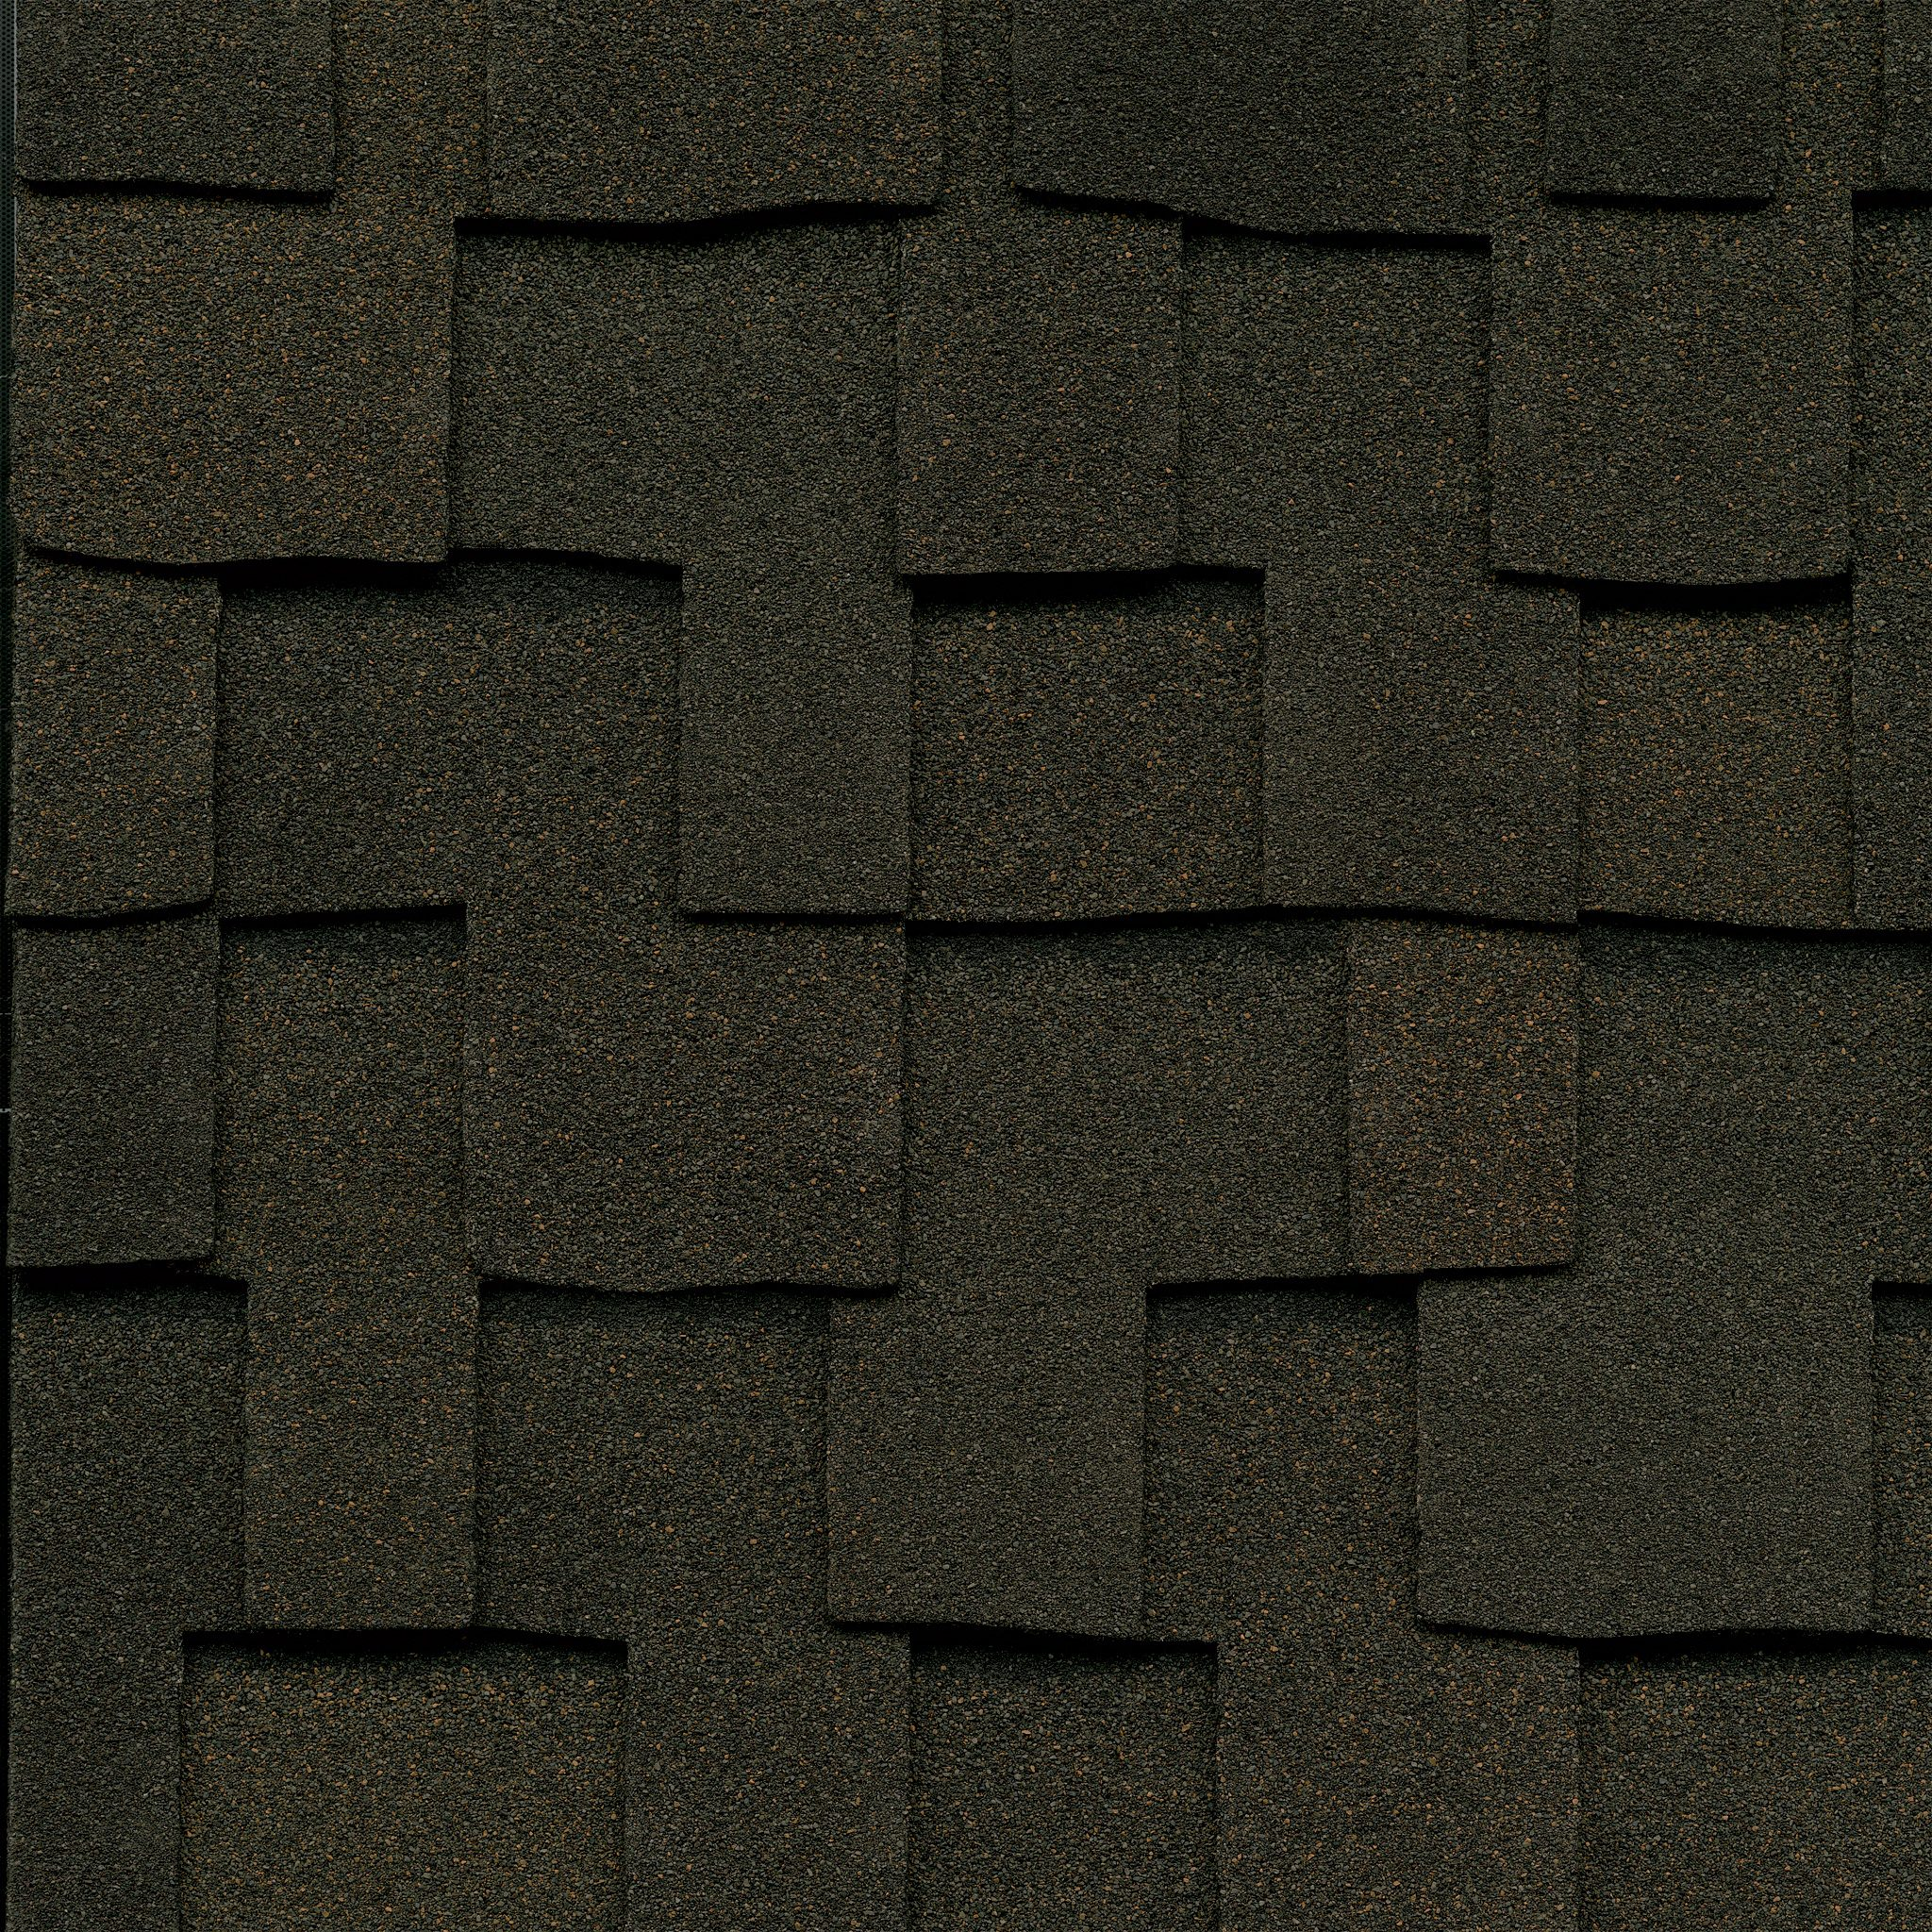 Close-up photo of GAF's Grand Sequoia Autumn Brown shingle swatch